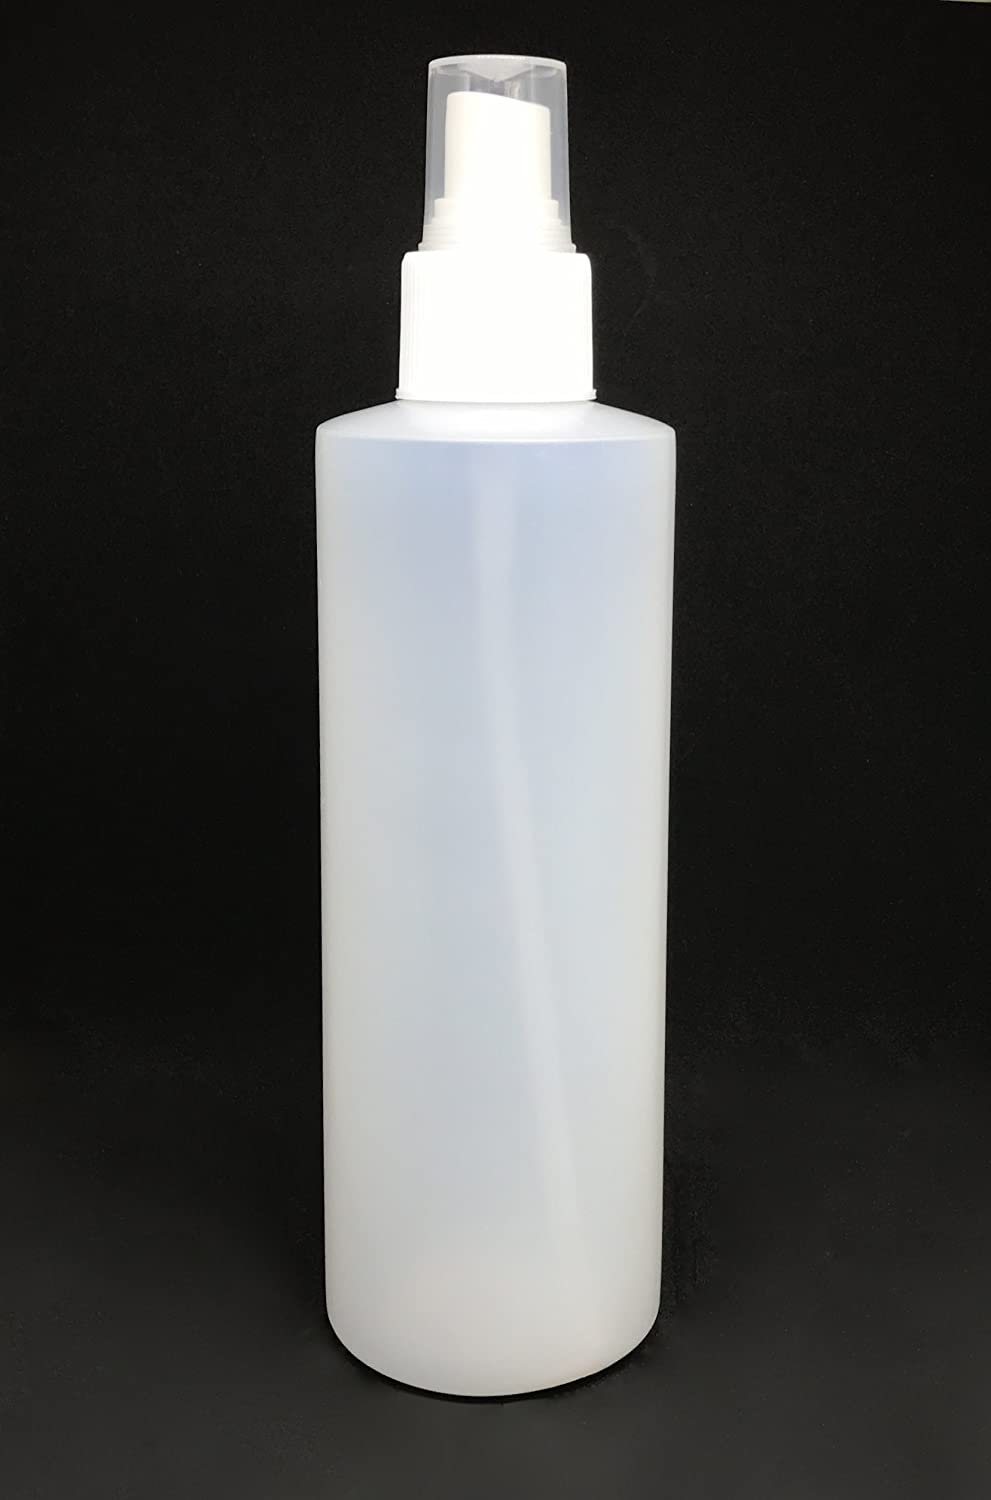 8 oz. Plastic Pump Spray Bottle (4 Pack)